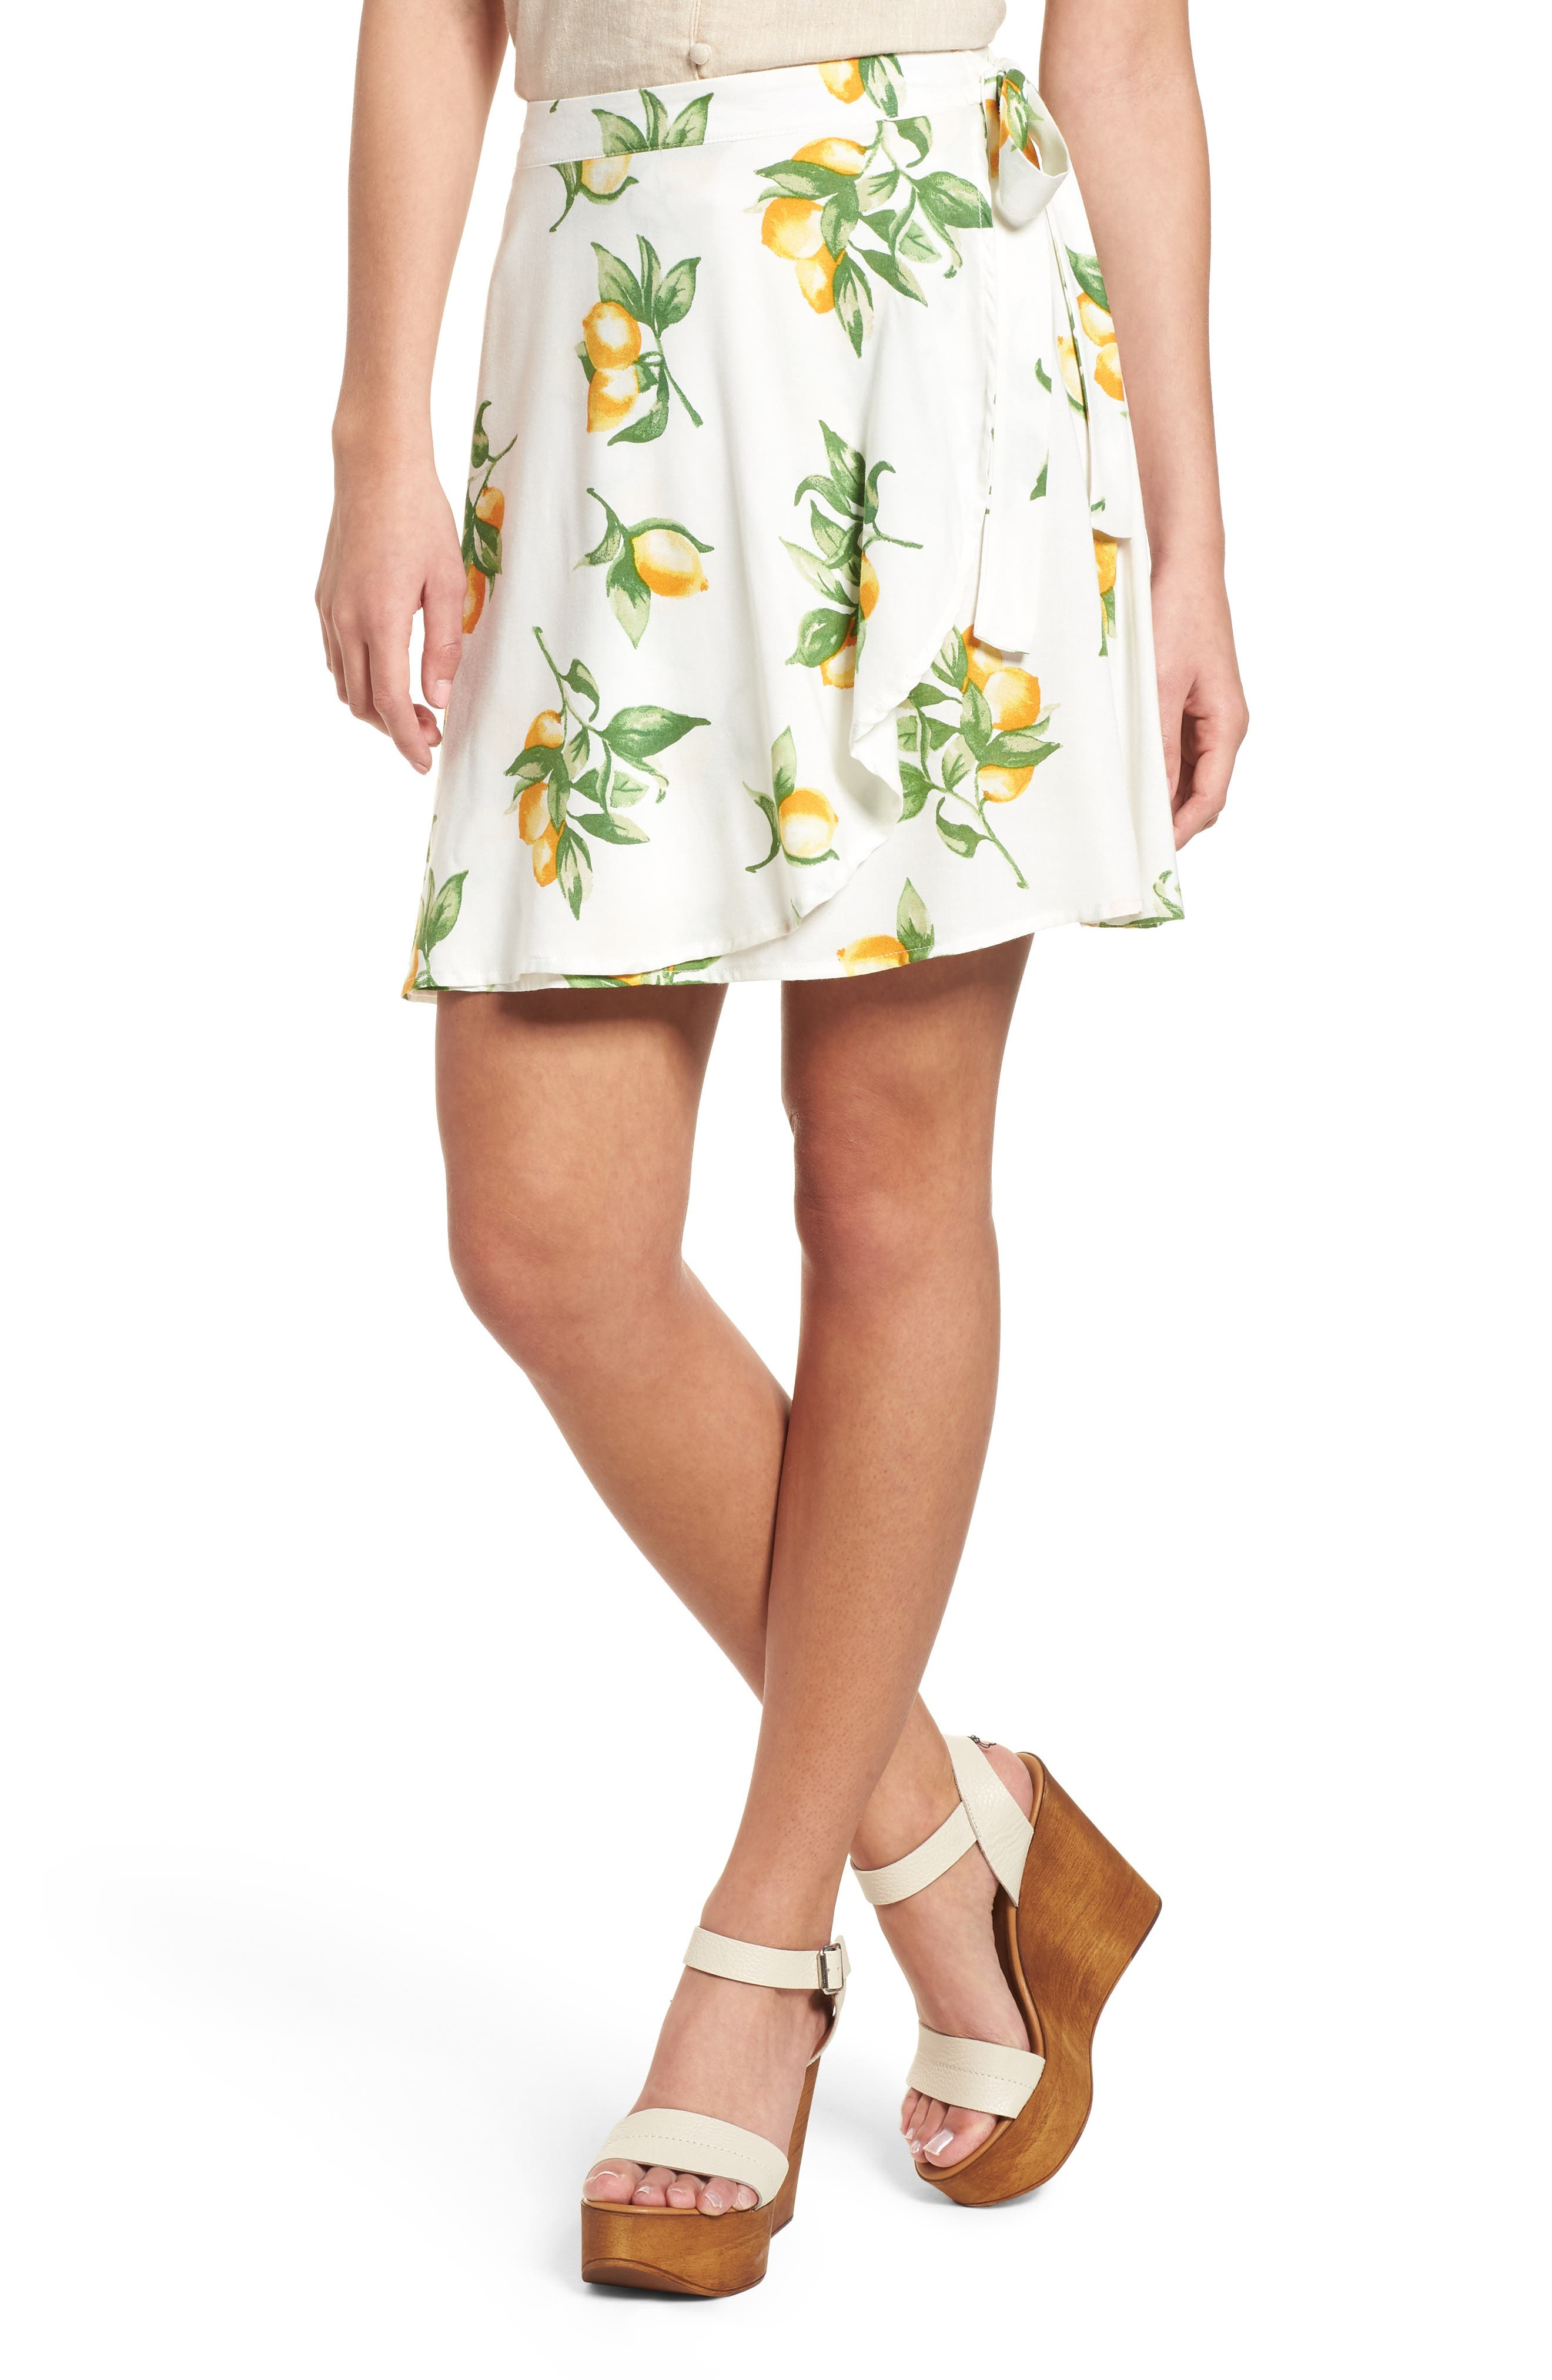 Main Image - Mimi Chica Fruit Print Side Tie Skirt